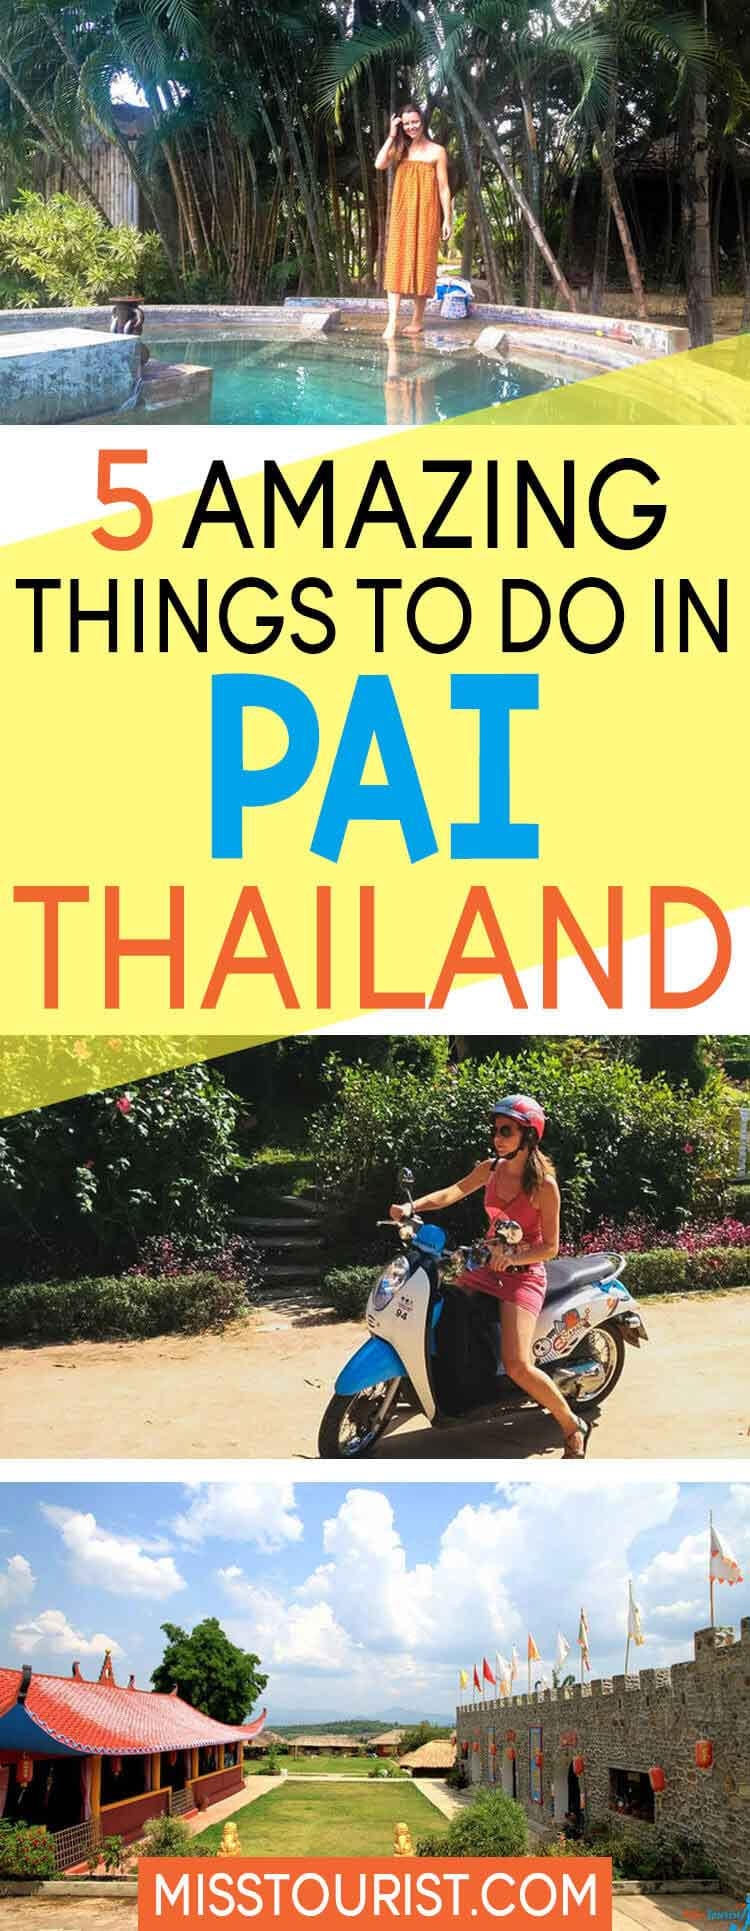 things to do pai thailand